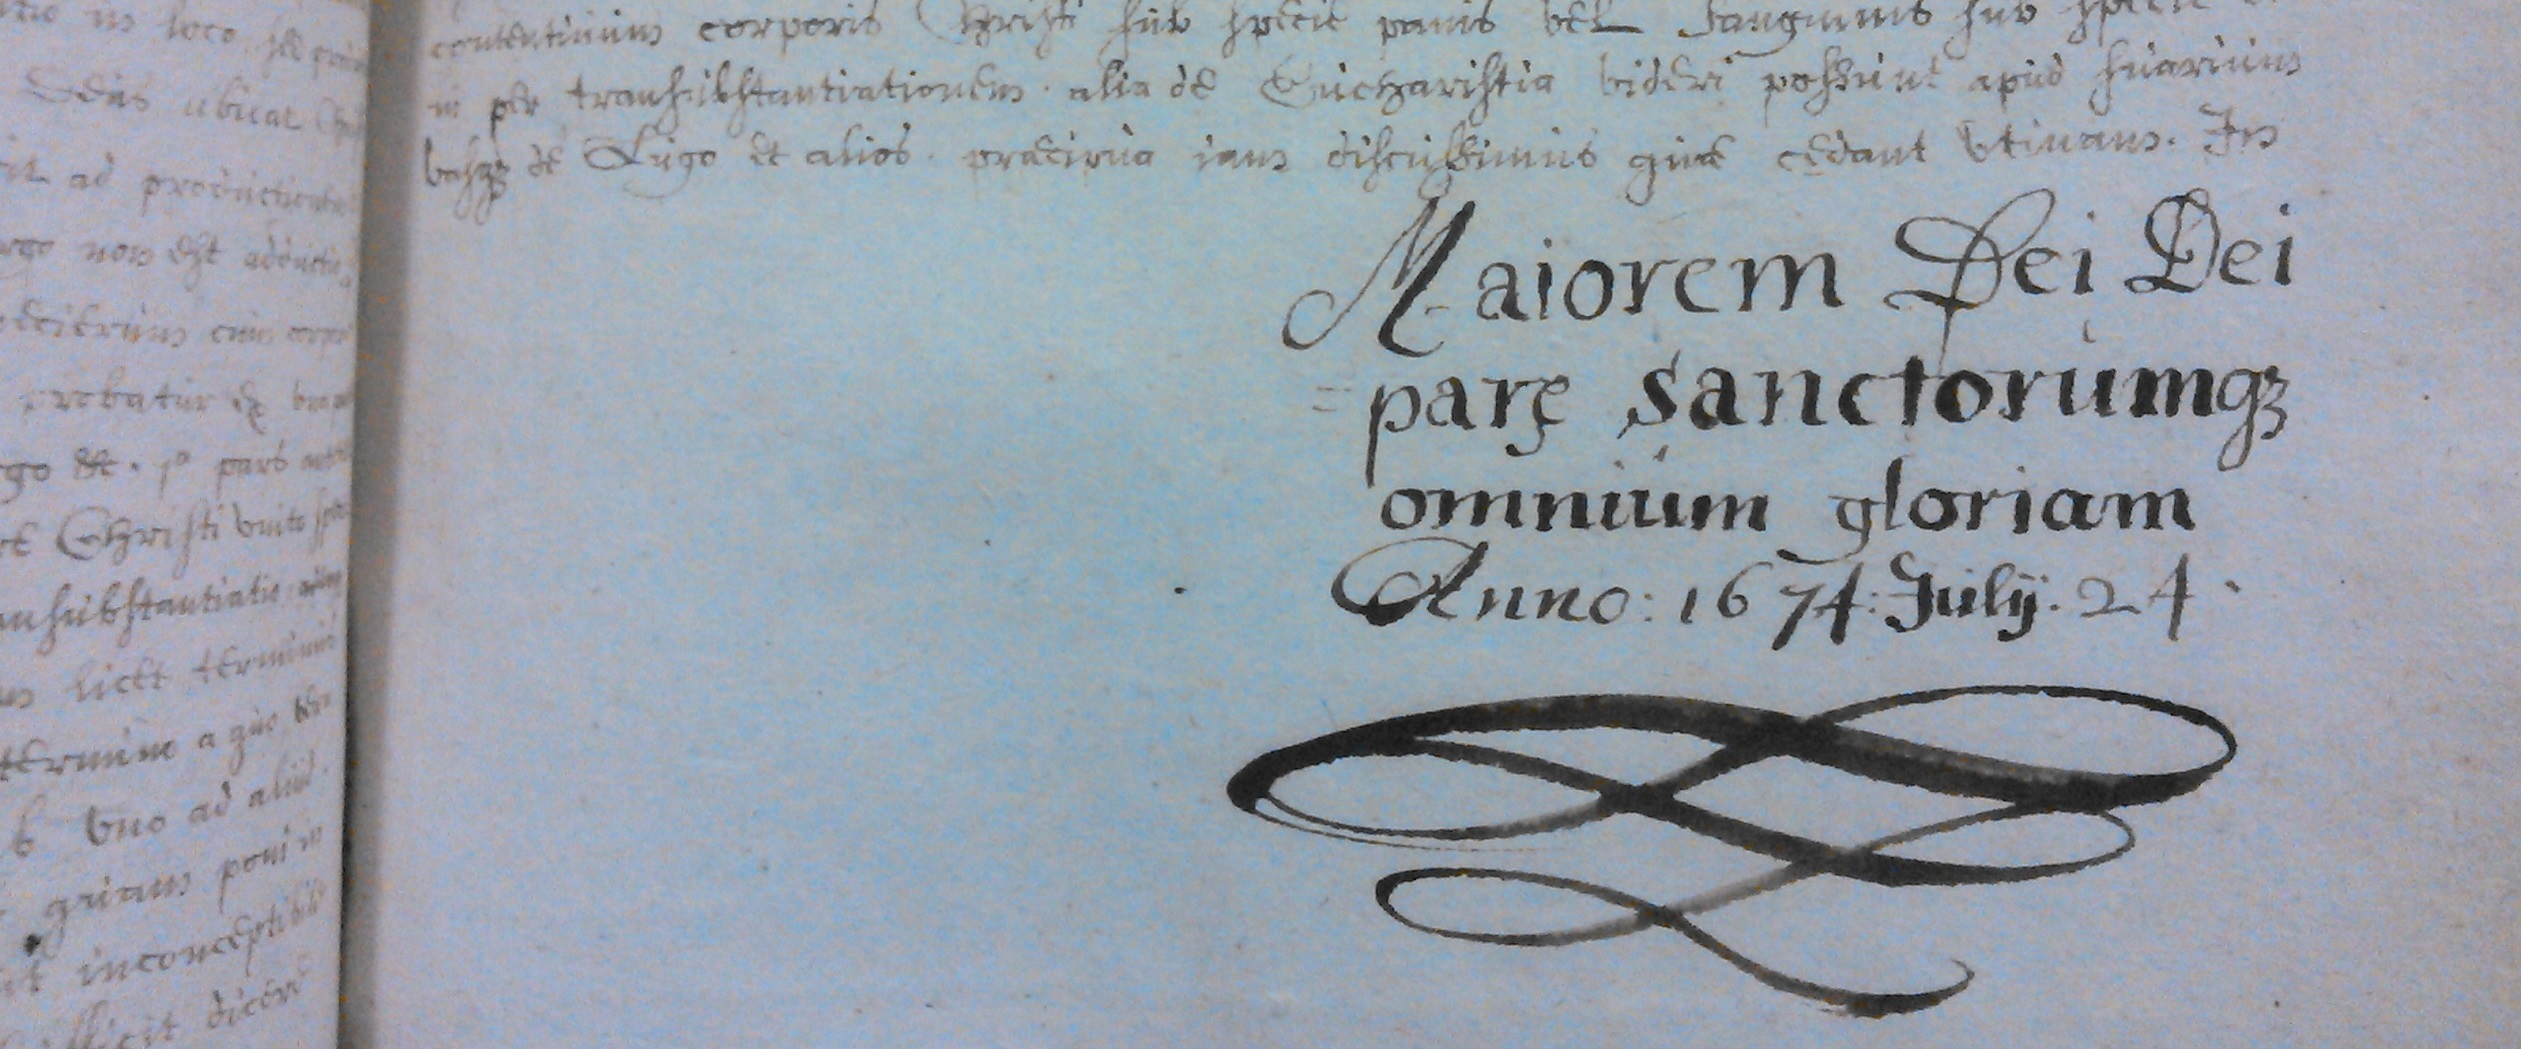 COLLECTIONS - Medieval and Early Modern manuscripts at Georgetown ... cbb881aeaecc